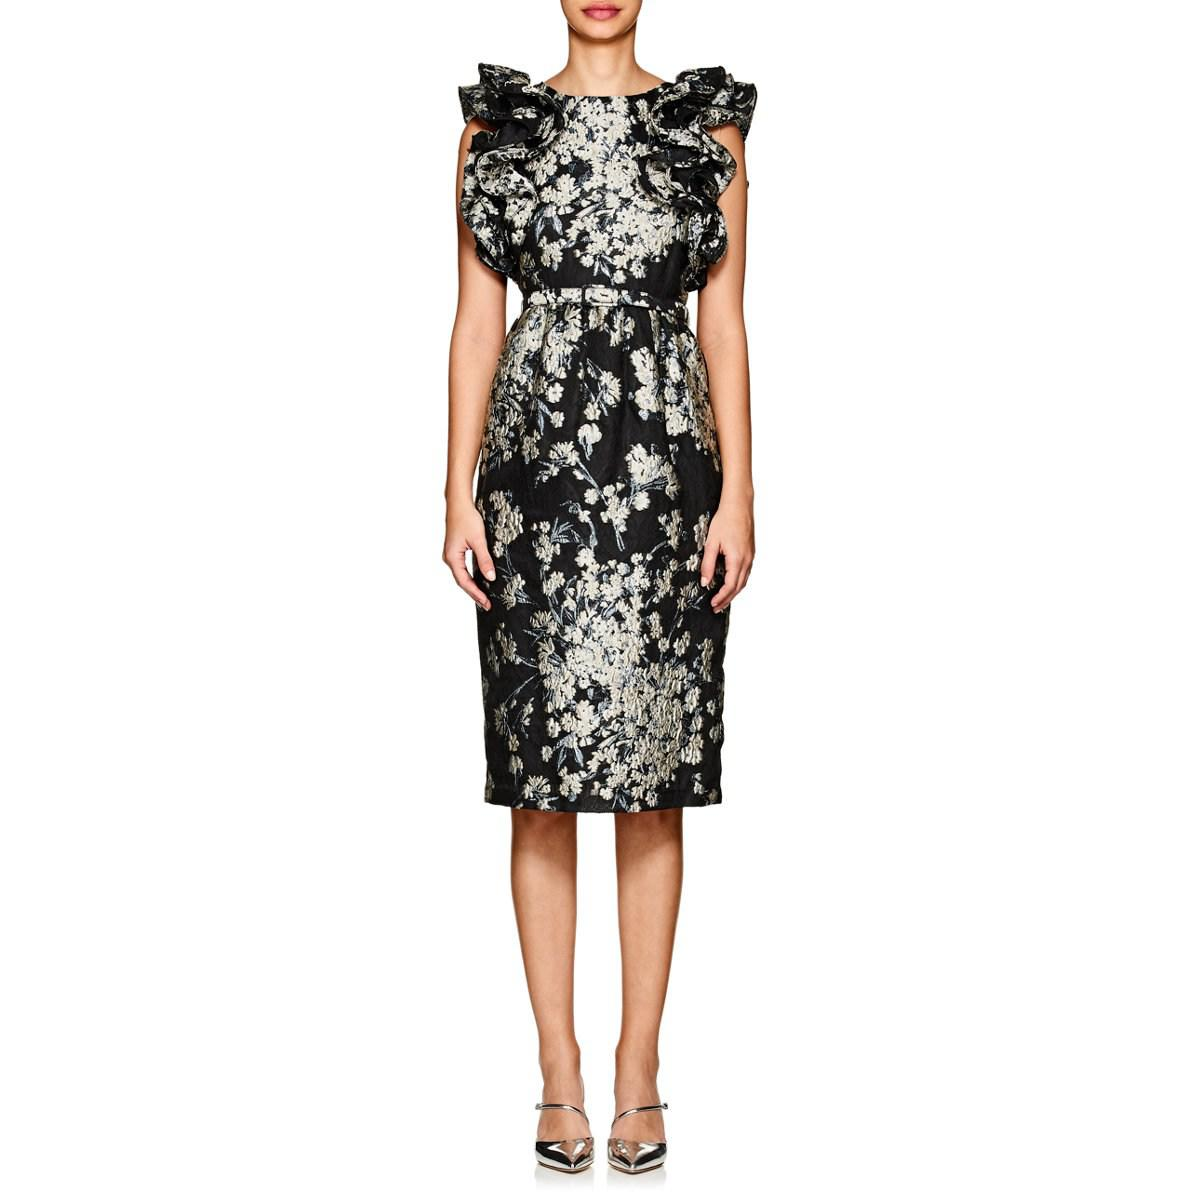 2efd78abac Lyst - Co. Floral Ruffled Brocade Cktail Dress Size S in Black ...